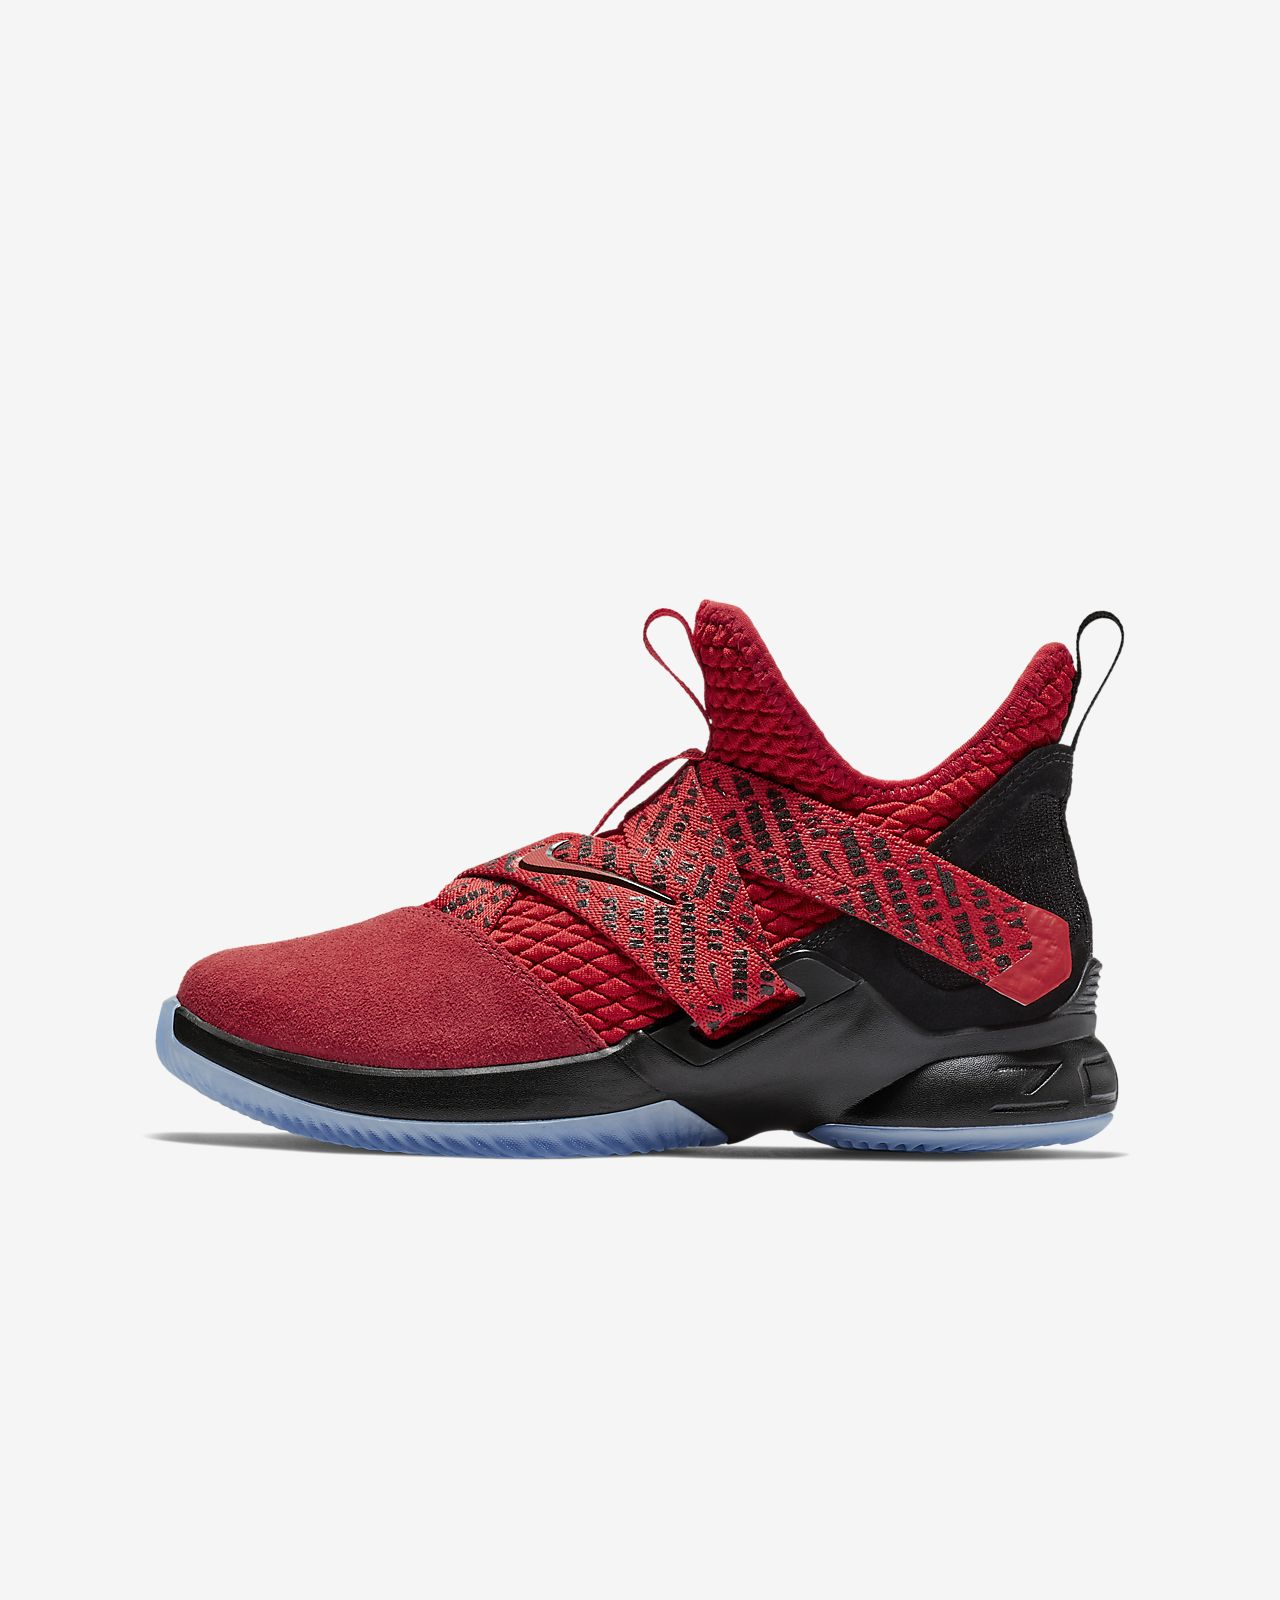 LeBron Soldier XII Big Kids' Basketball Shoe